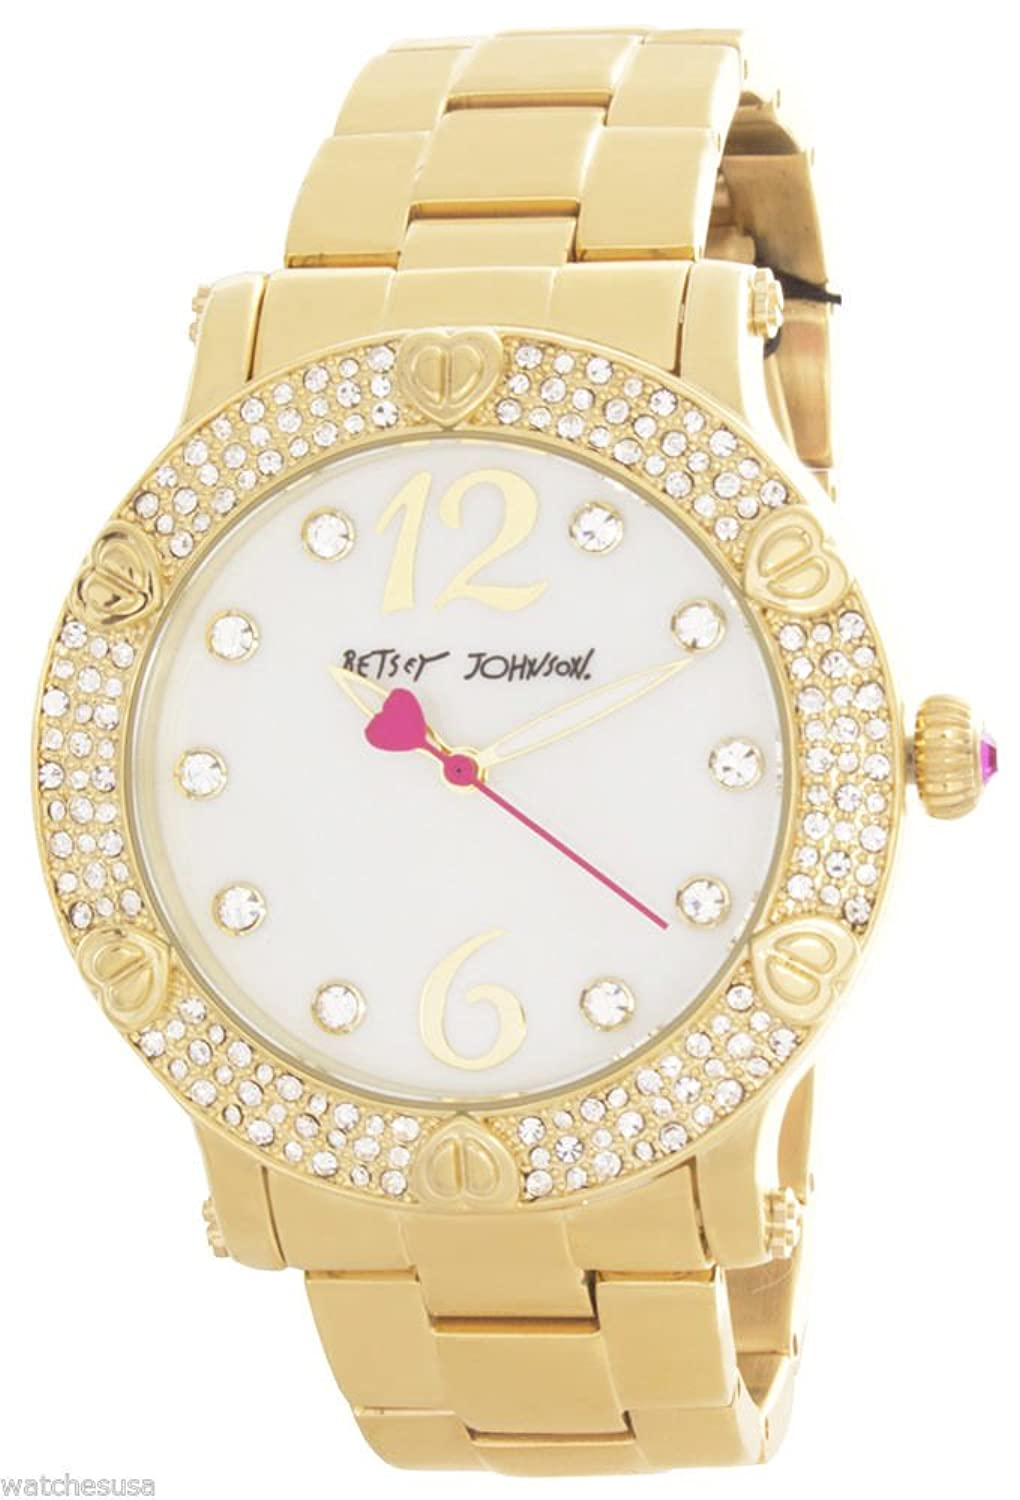 BETSEY JOHNSON BOYFRIEND PEARL DIAL GOLD-TONE WATCH BJ00229-02